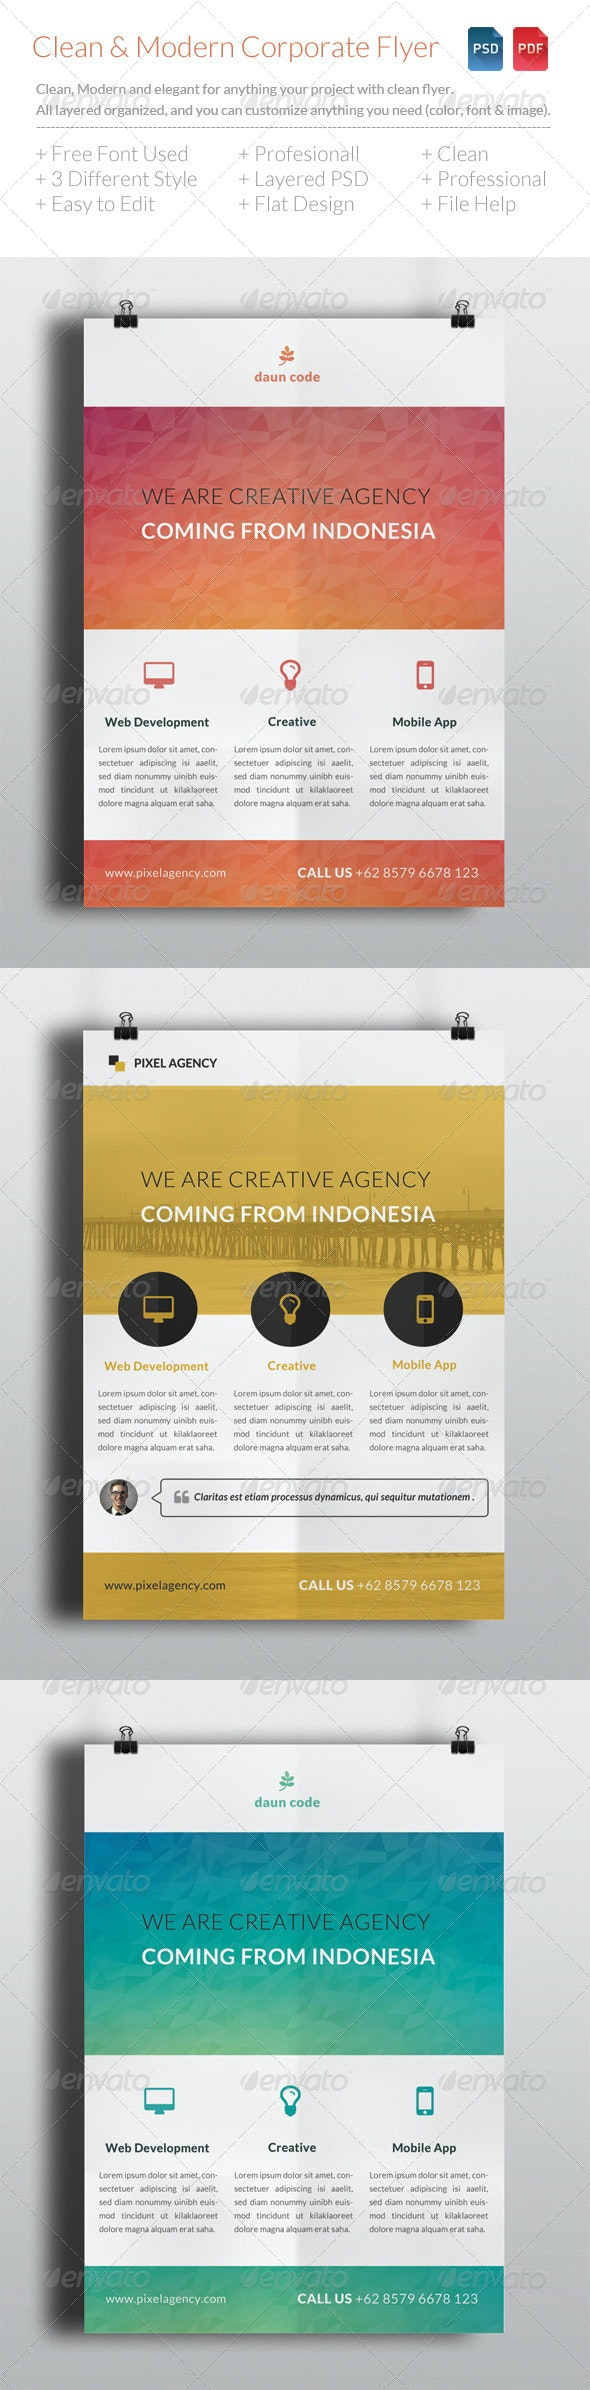 Clean & Modern Corporate Flyer Template V5 - Corporate Flyers